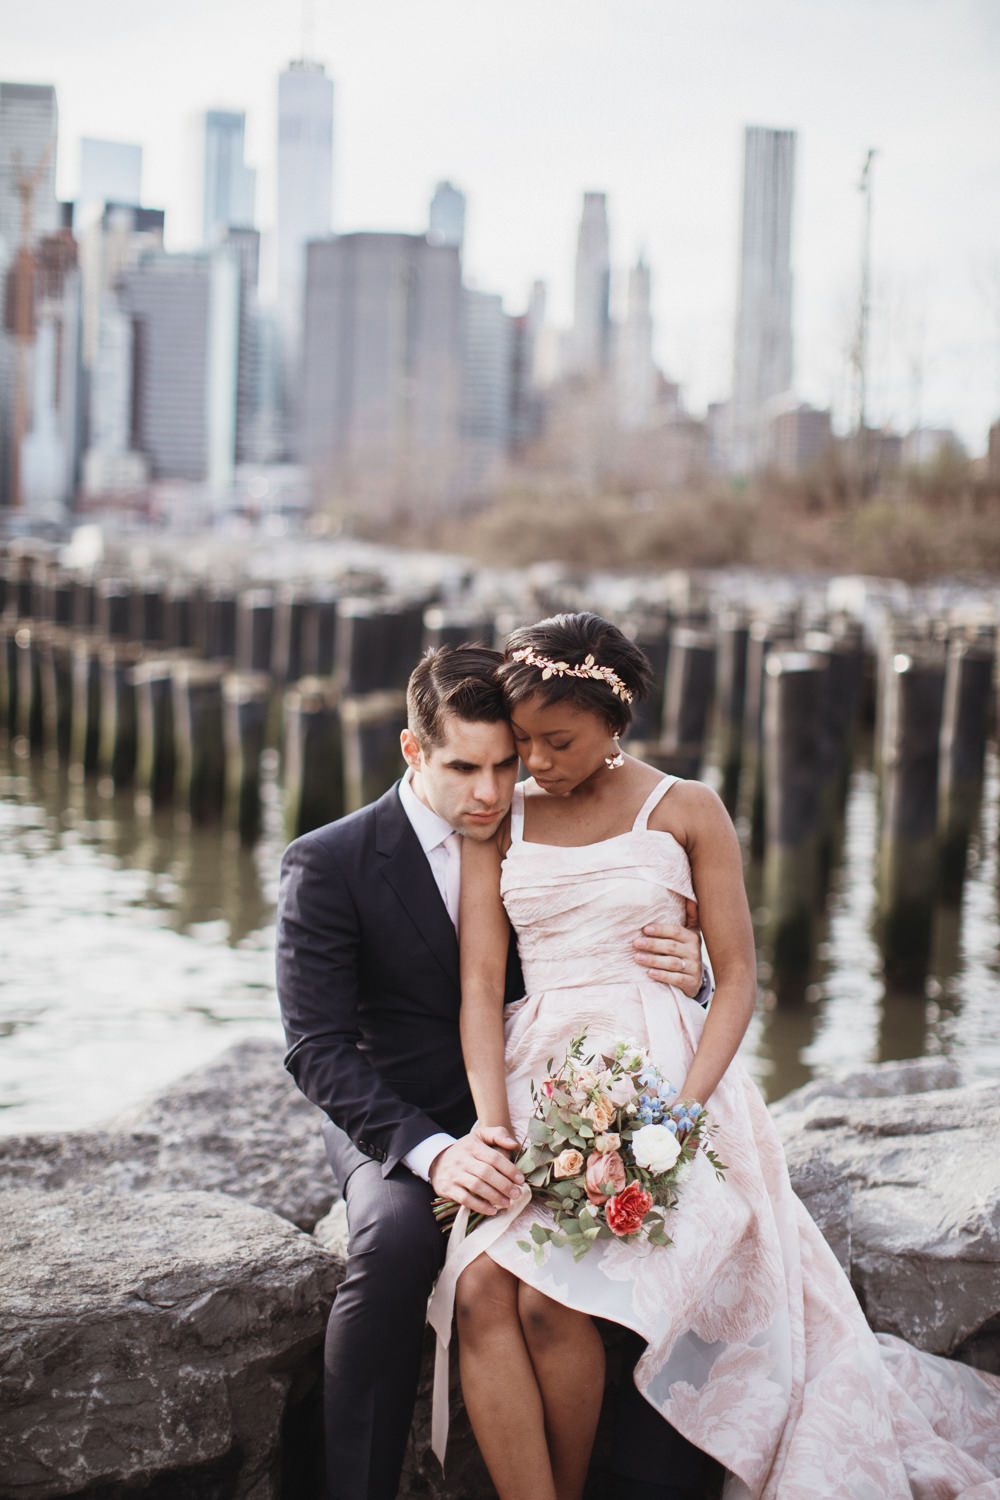 Wedding Photos in DUMBO Brookyn - Woman sits close to man on rocks holding a bouquet